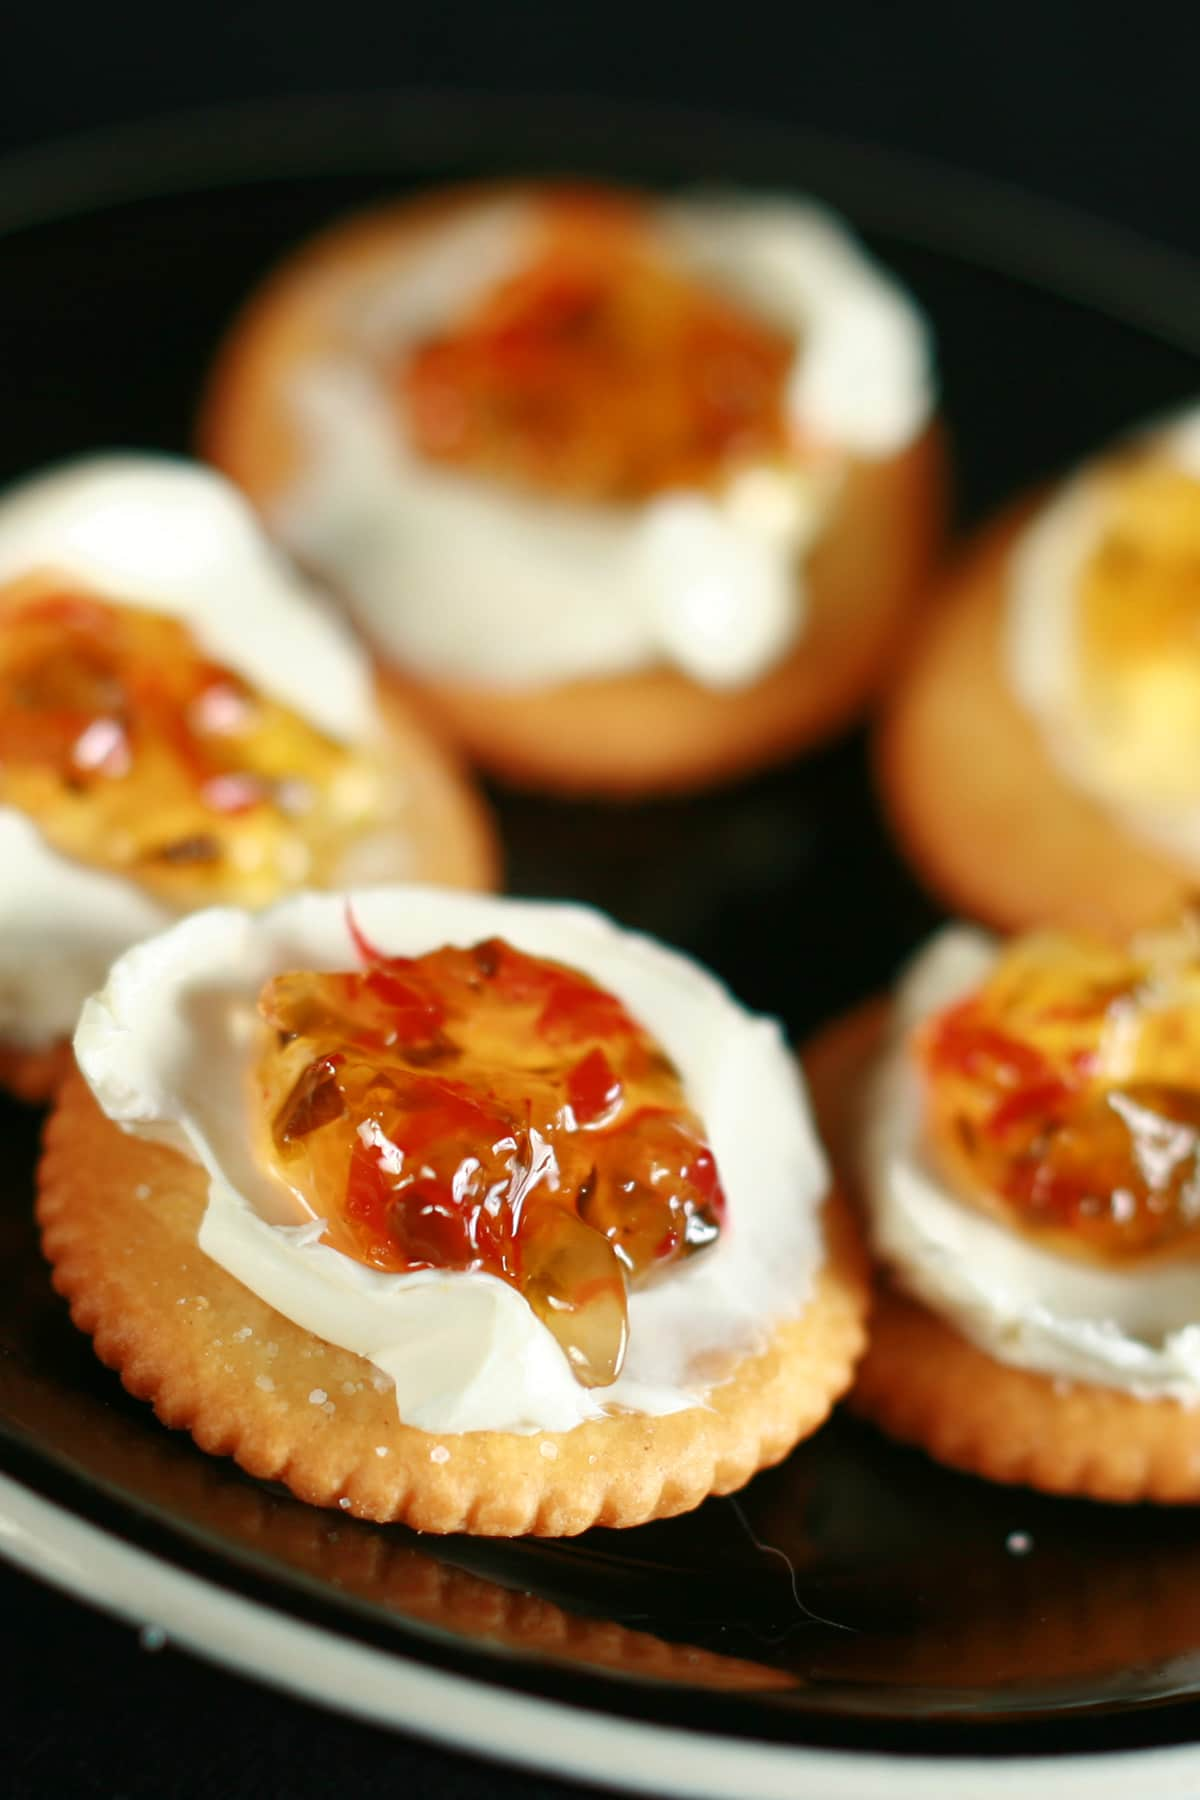 A black plate with Ritz crackers. They've been topped with a smear of cream cheese, and a dollop of pepper jelly.